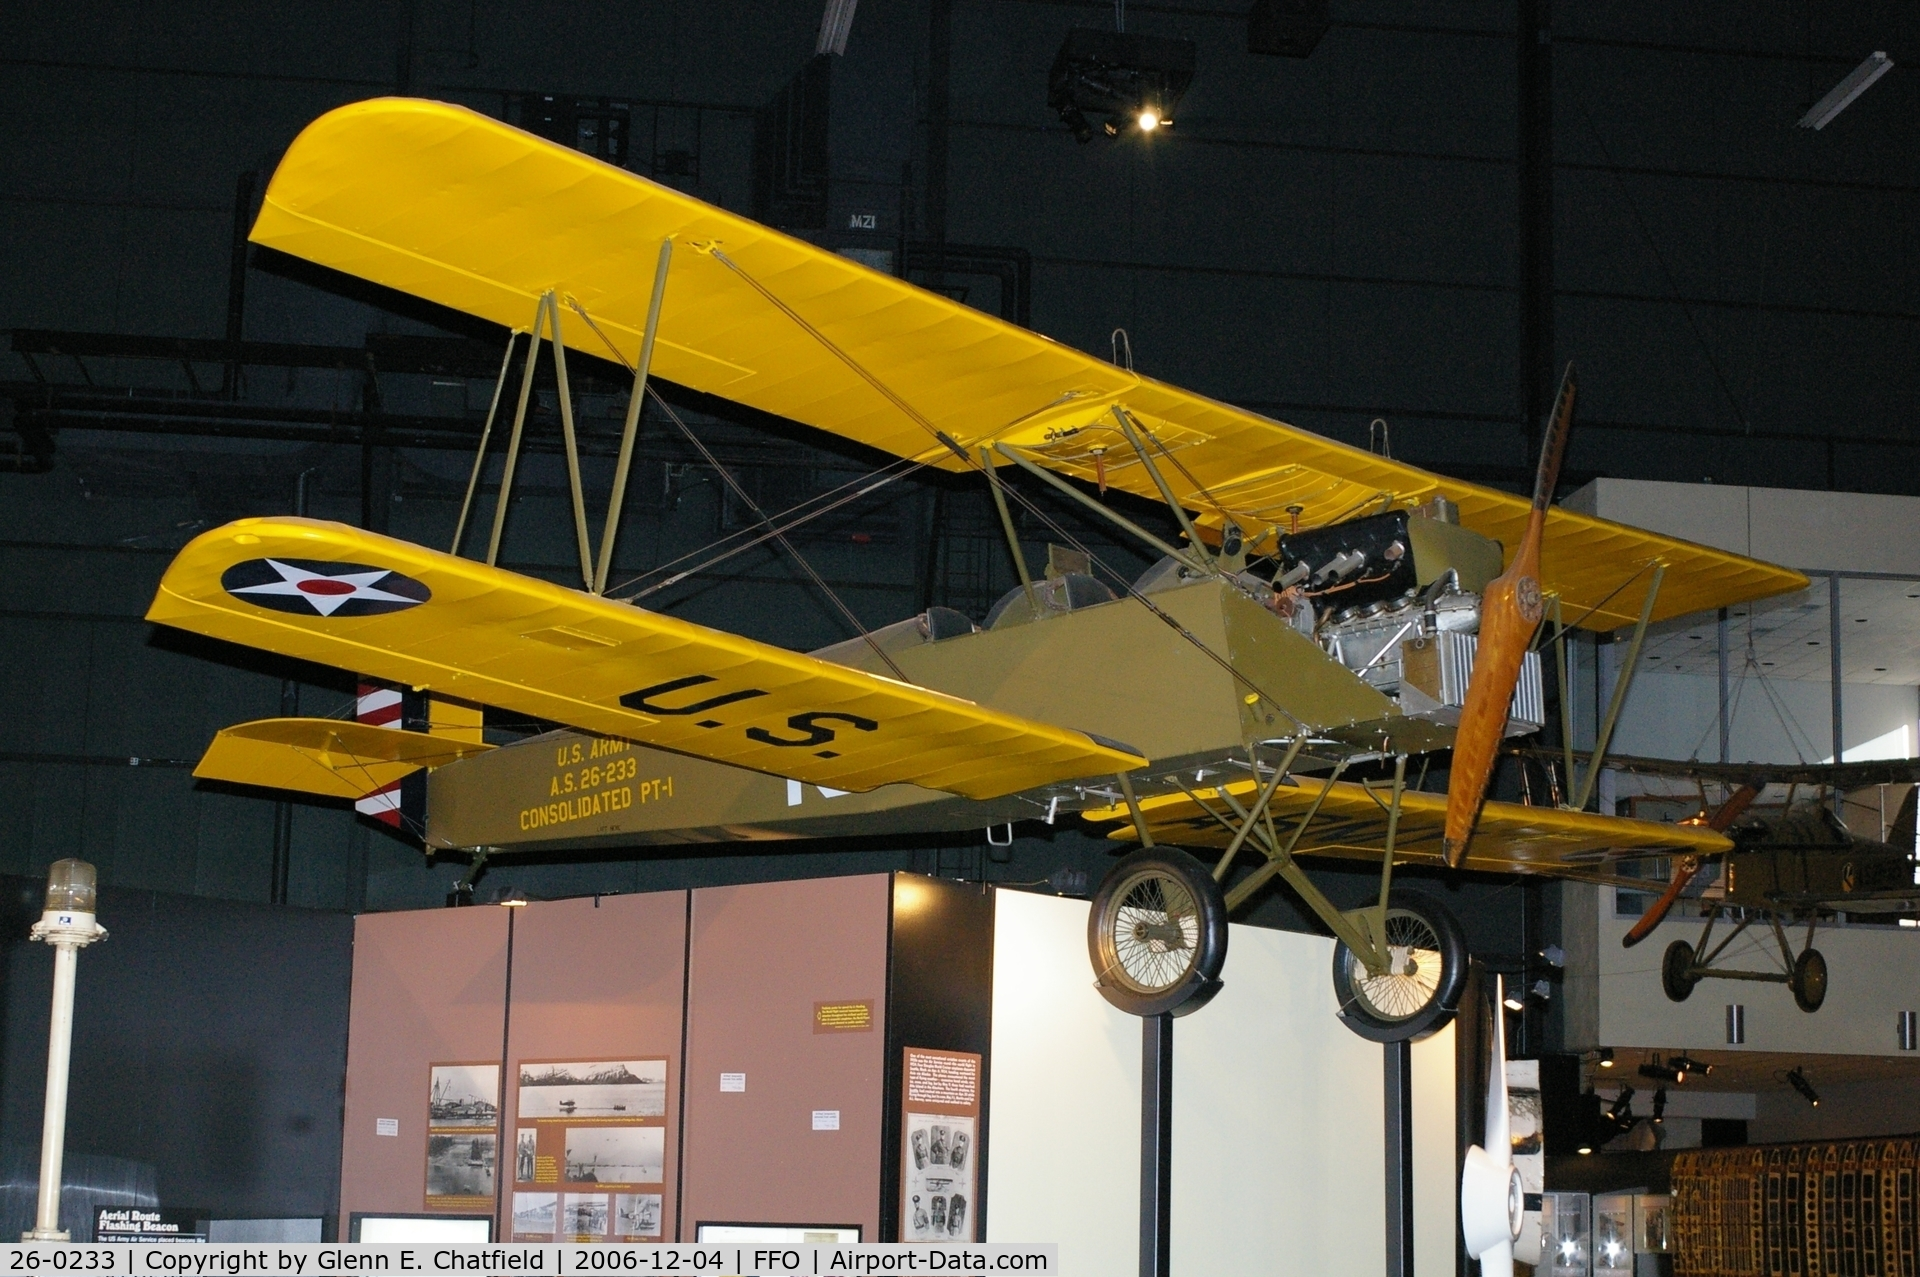 26-0233, 1926 Consolidated PT-1 Trusty C/N Not found 26-0233, PT-1 at the National Museum of the U.S. Air Force